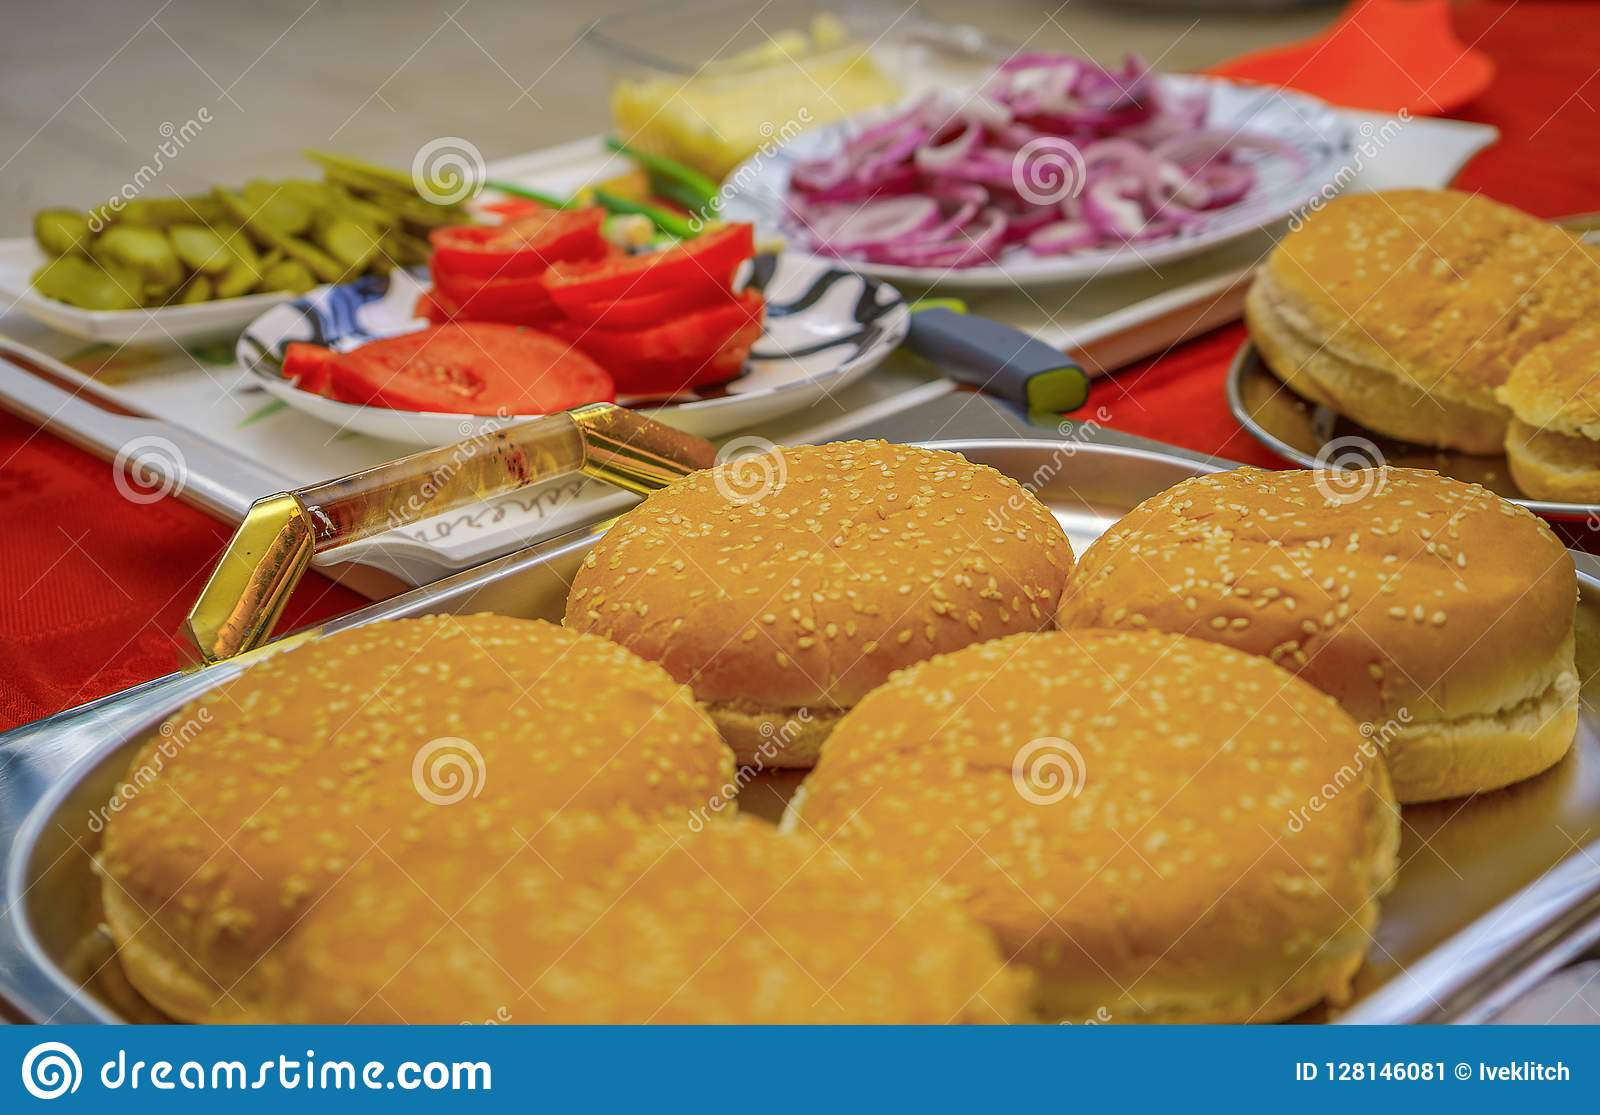 Homemade burger ingredients arranged on tray and plates outdoors. Onion, salted cucumbers, cherry tomatoes, ketchup sauce.